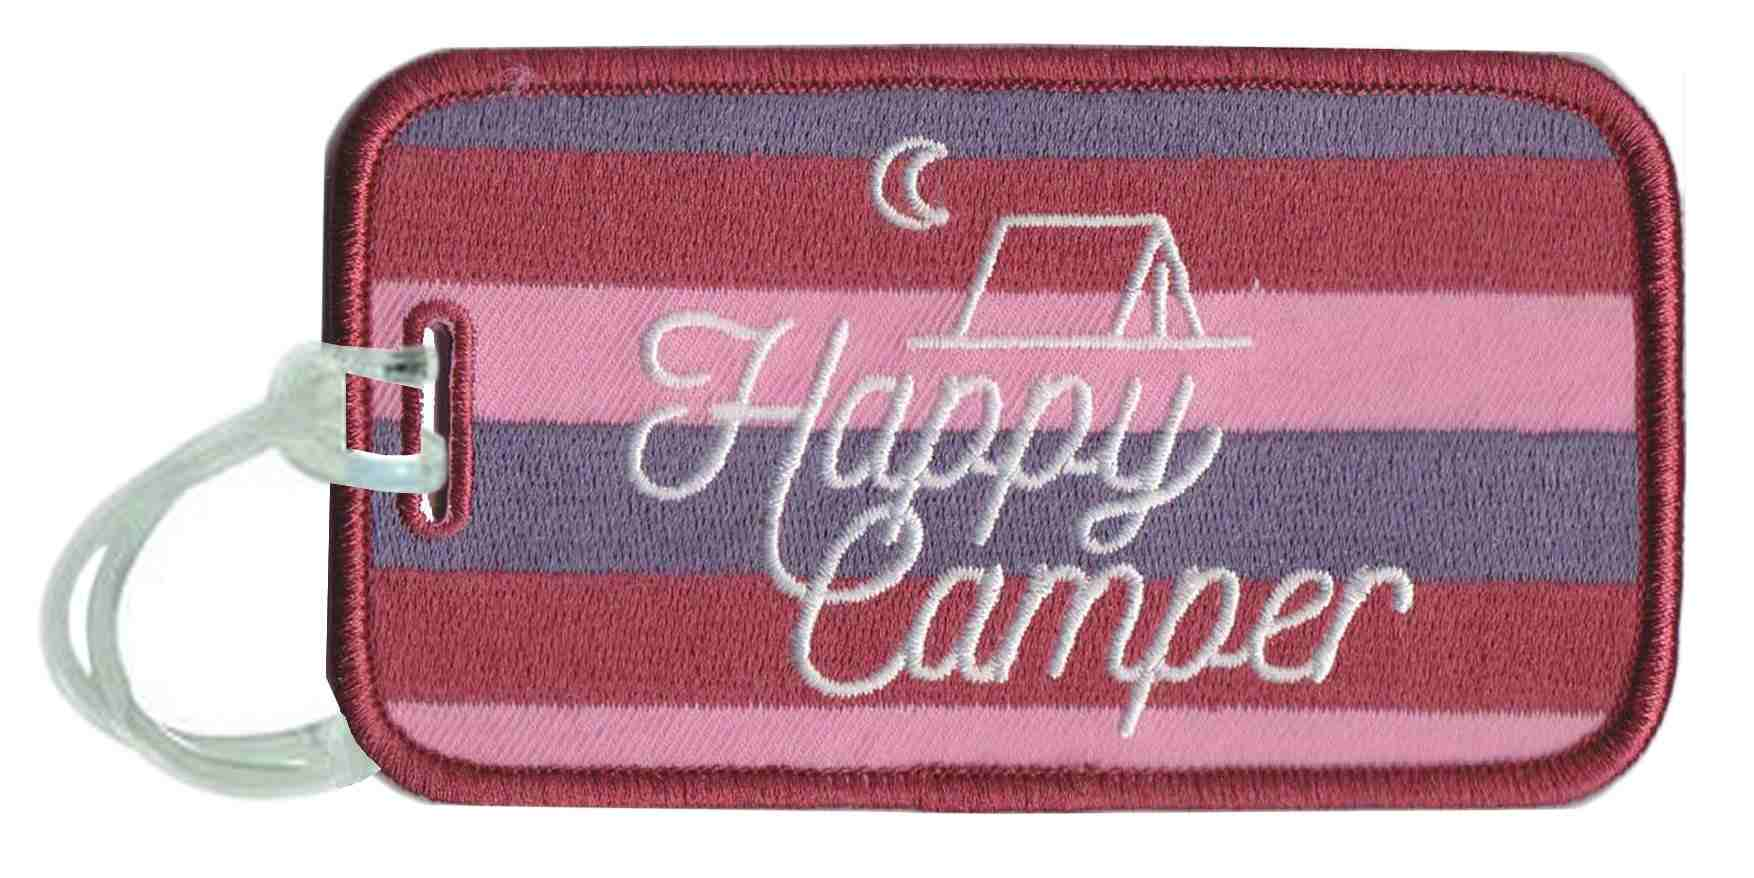 Happy Camper Wholesale Luggage Tags